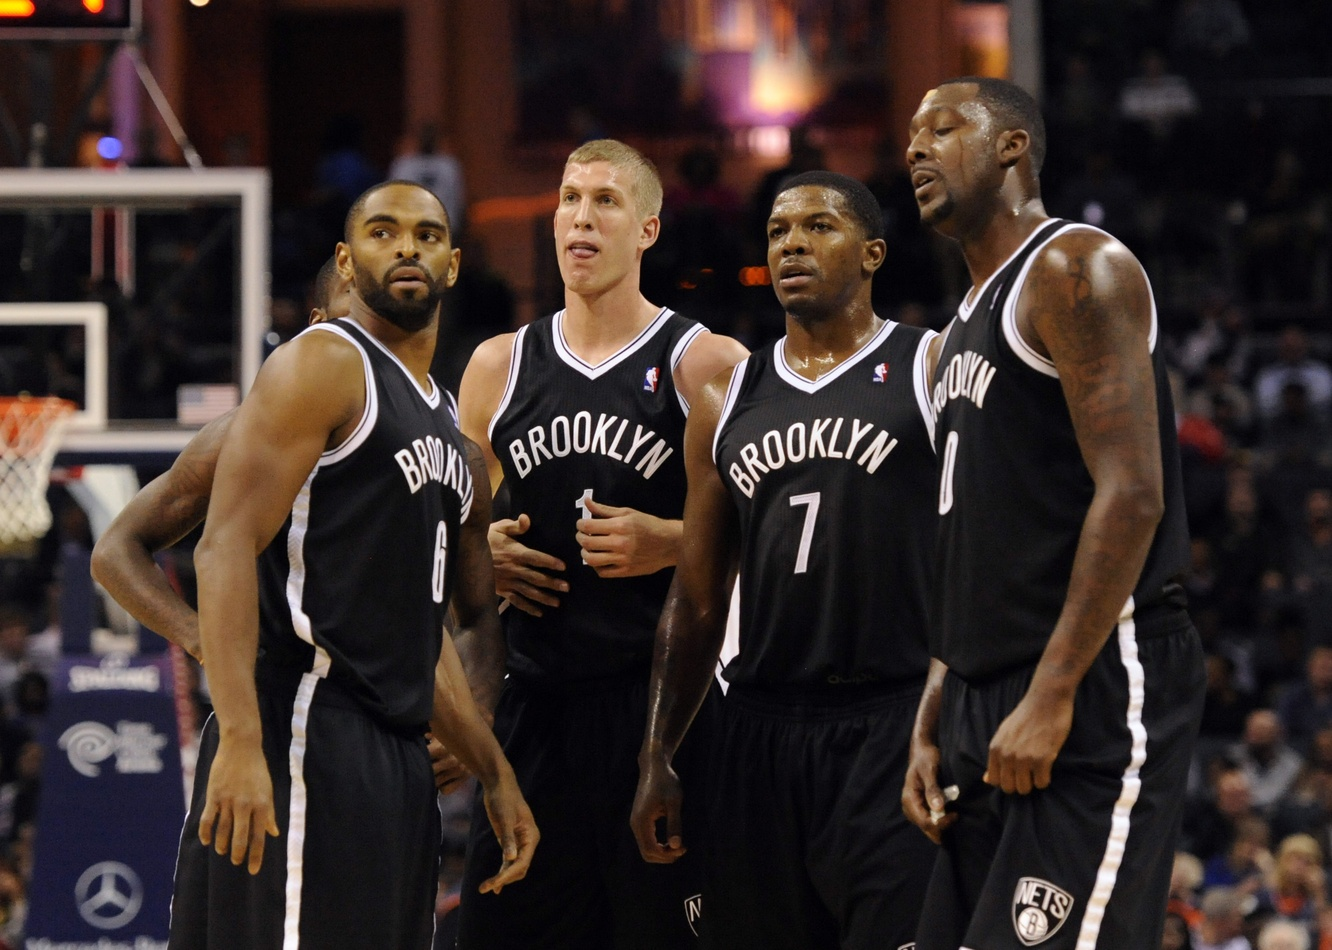 Nets in clueless huddle during game